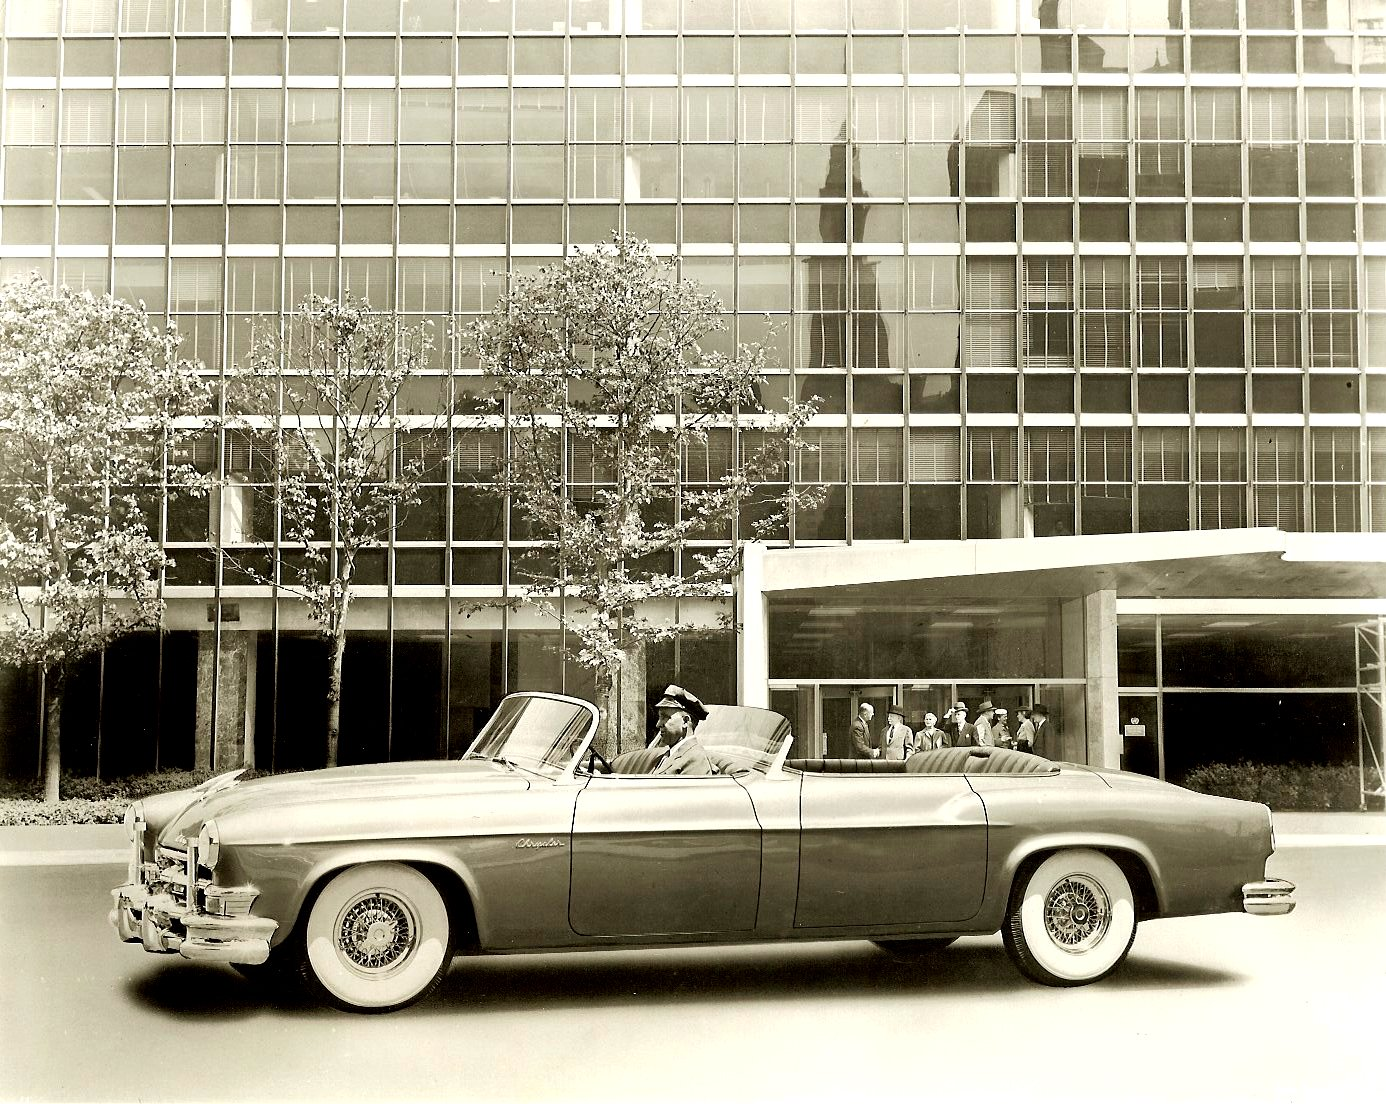 Experimental and Concept Cars - Chrysler